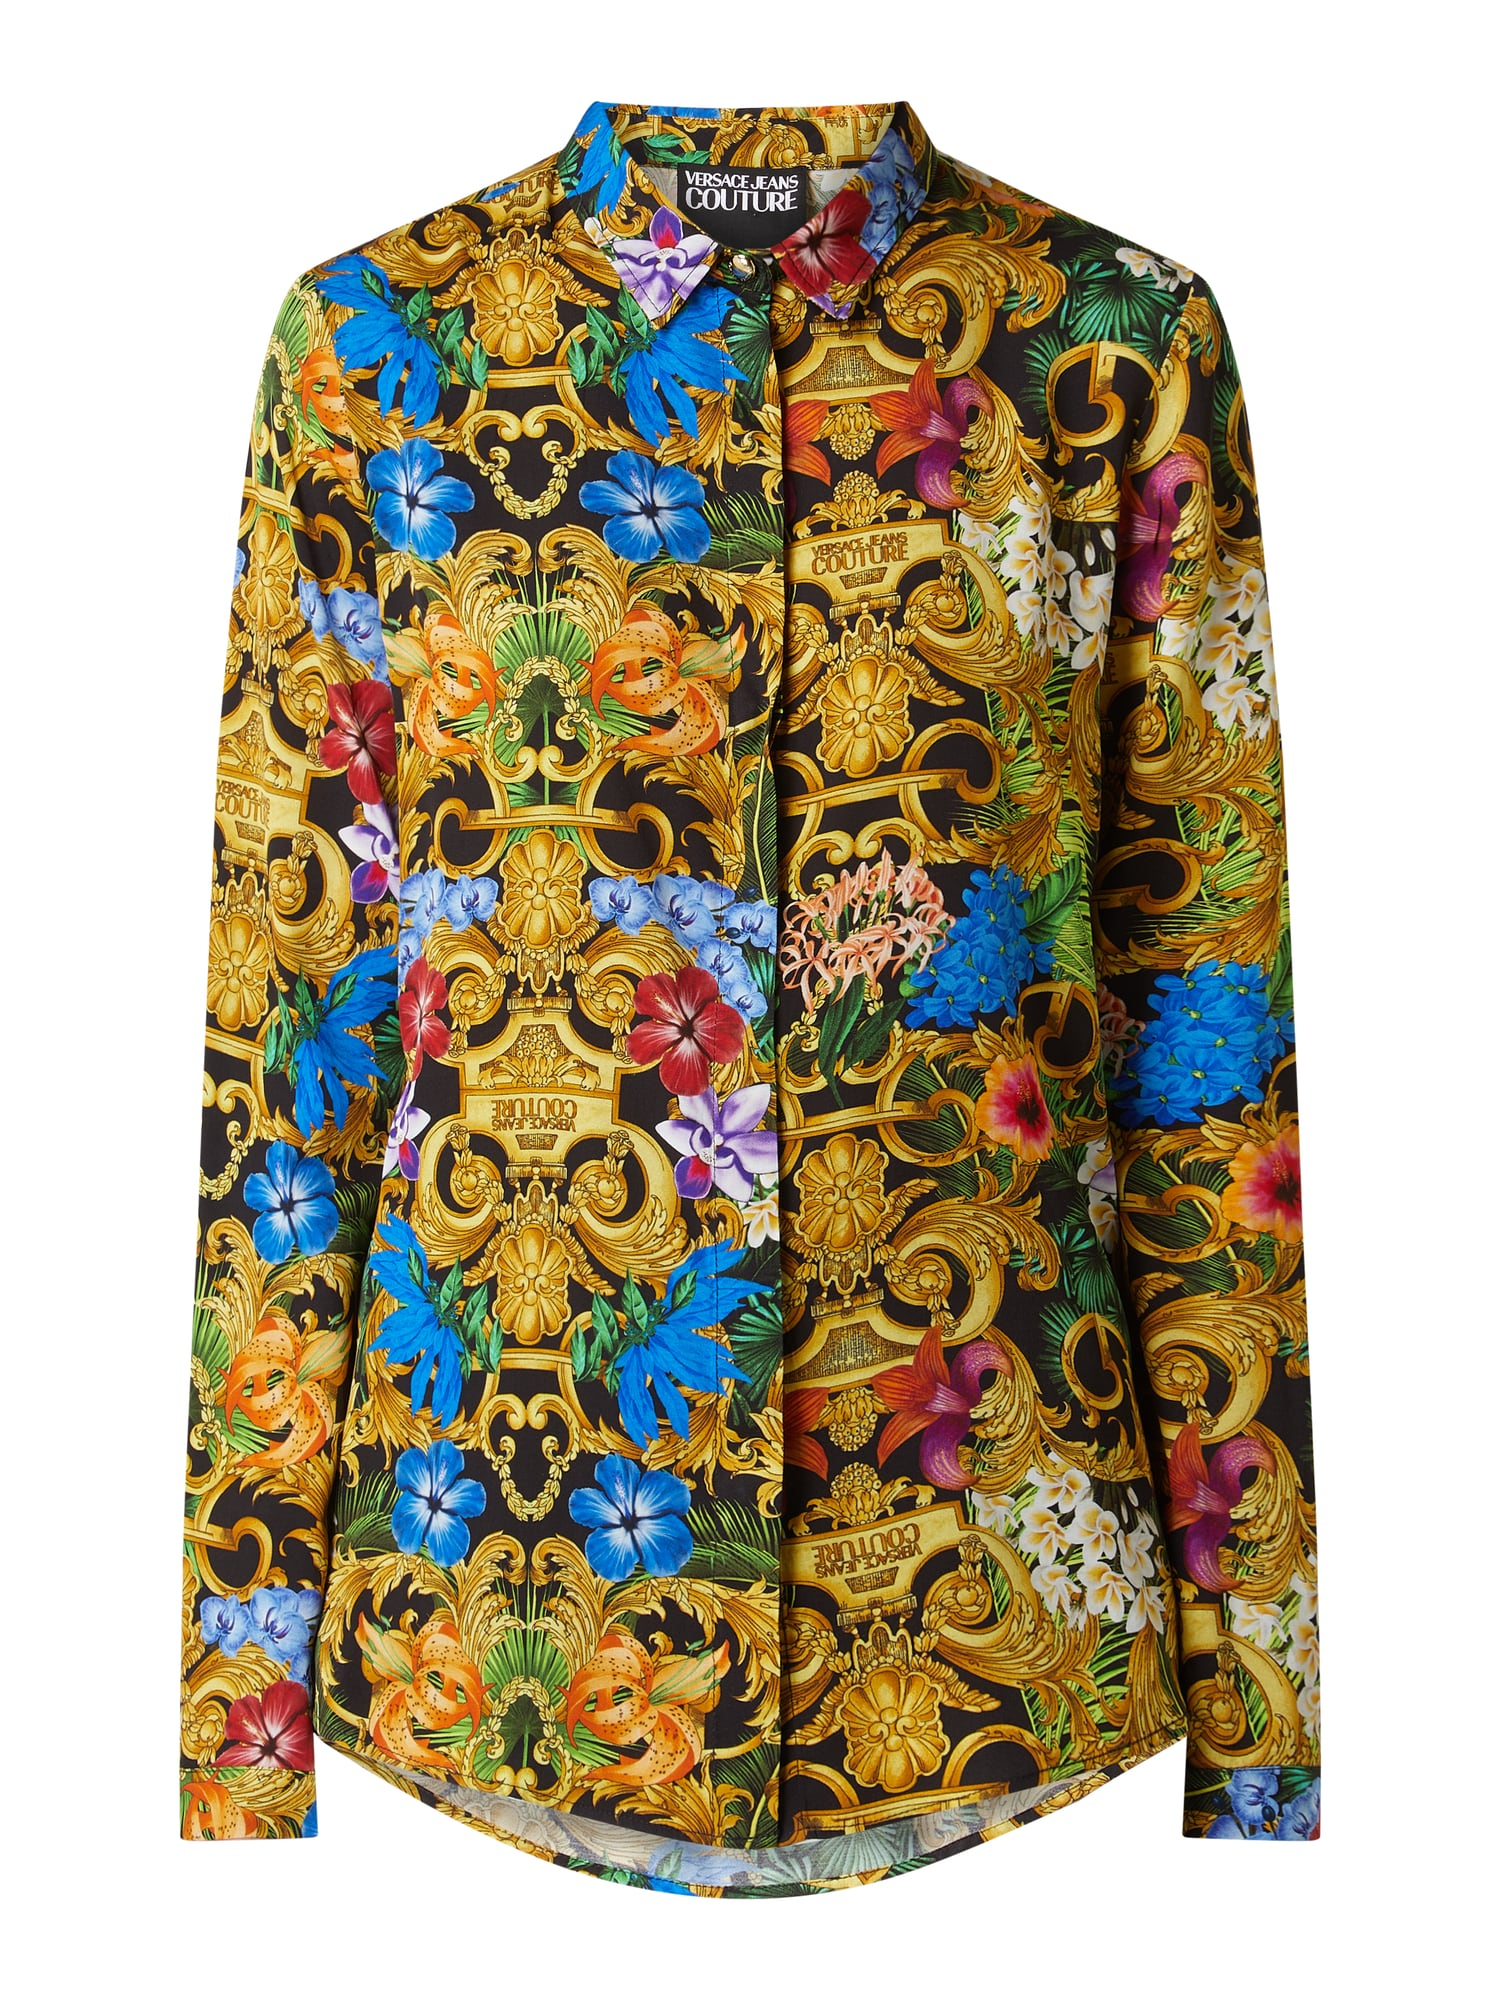 VERSACE JEANS COUTURE Bluse mit Ornamentmuster in Grau ...